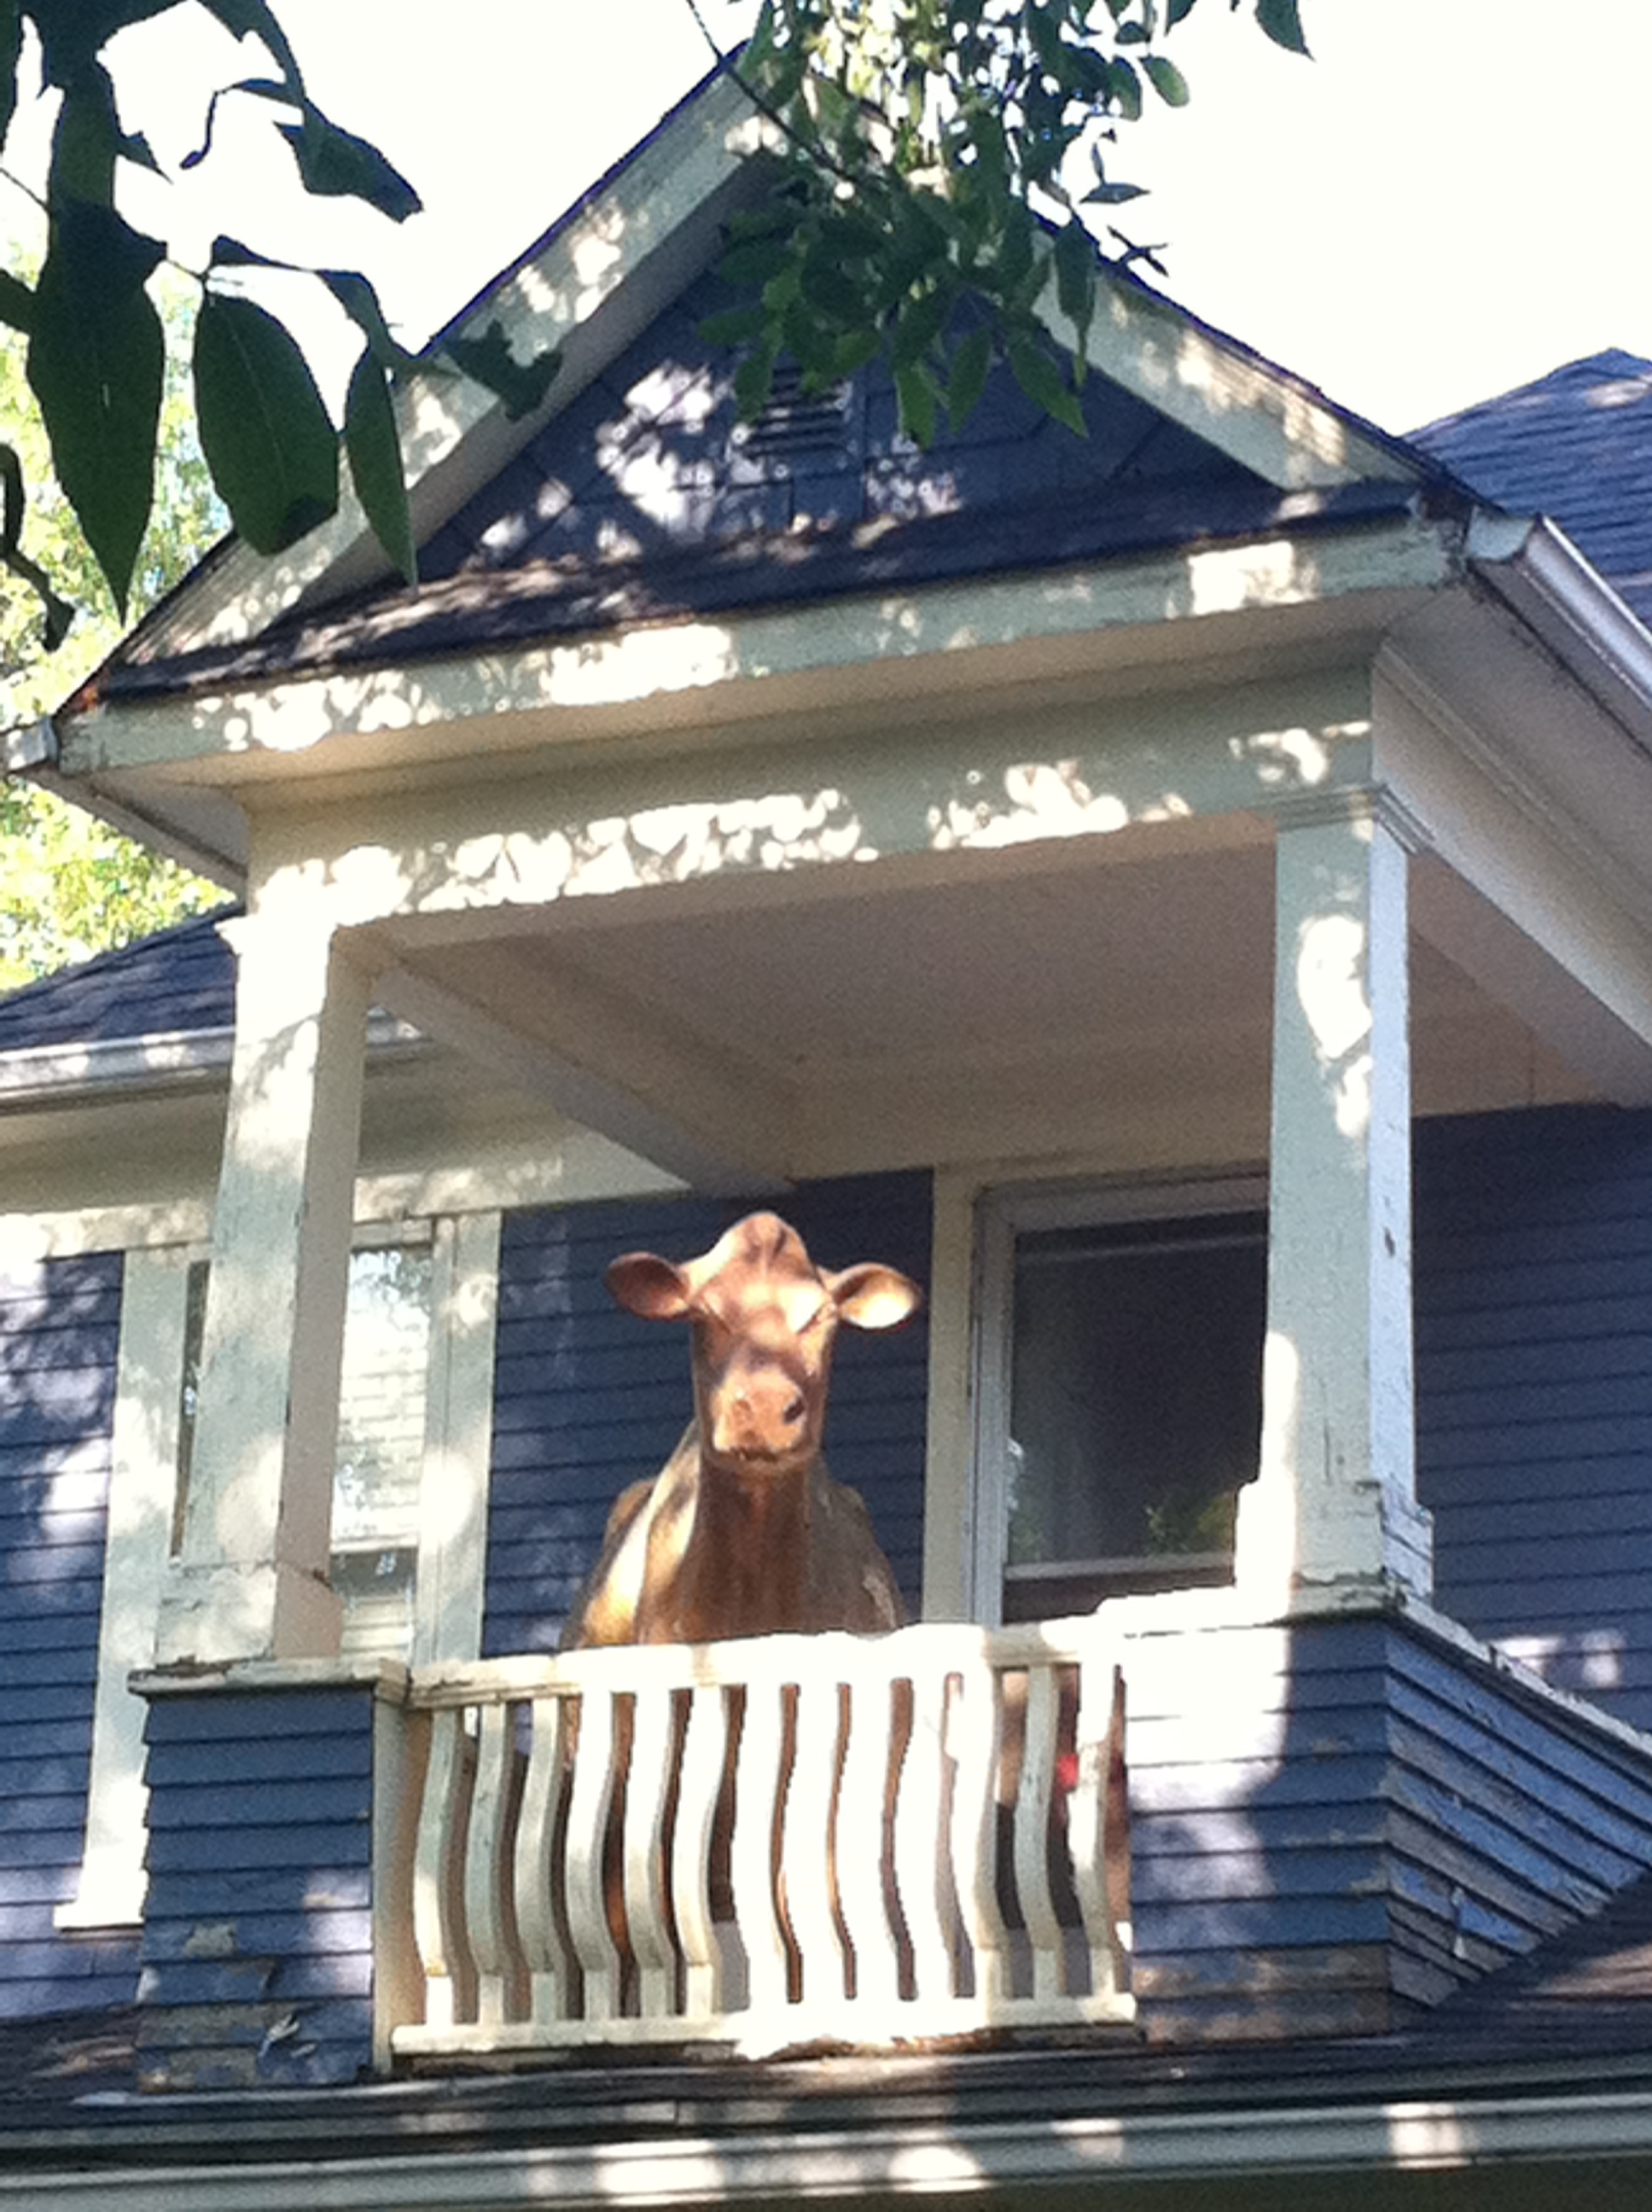 Cow on balcony in Cliff Bungalow.